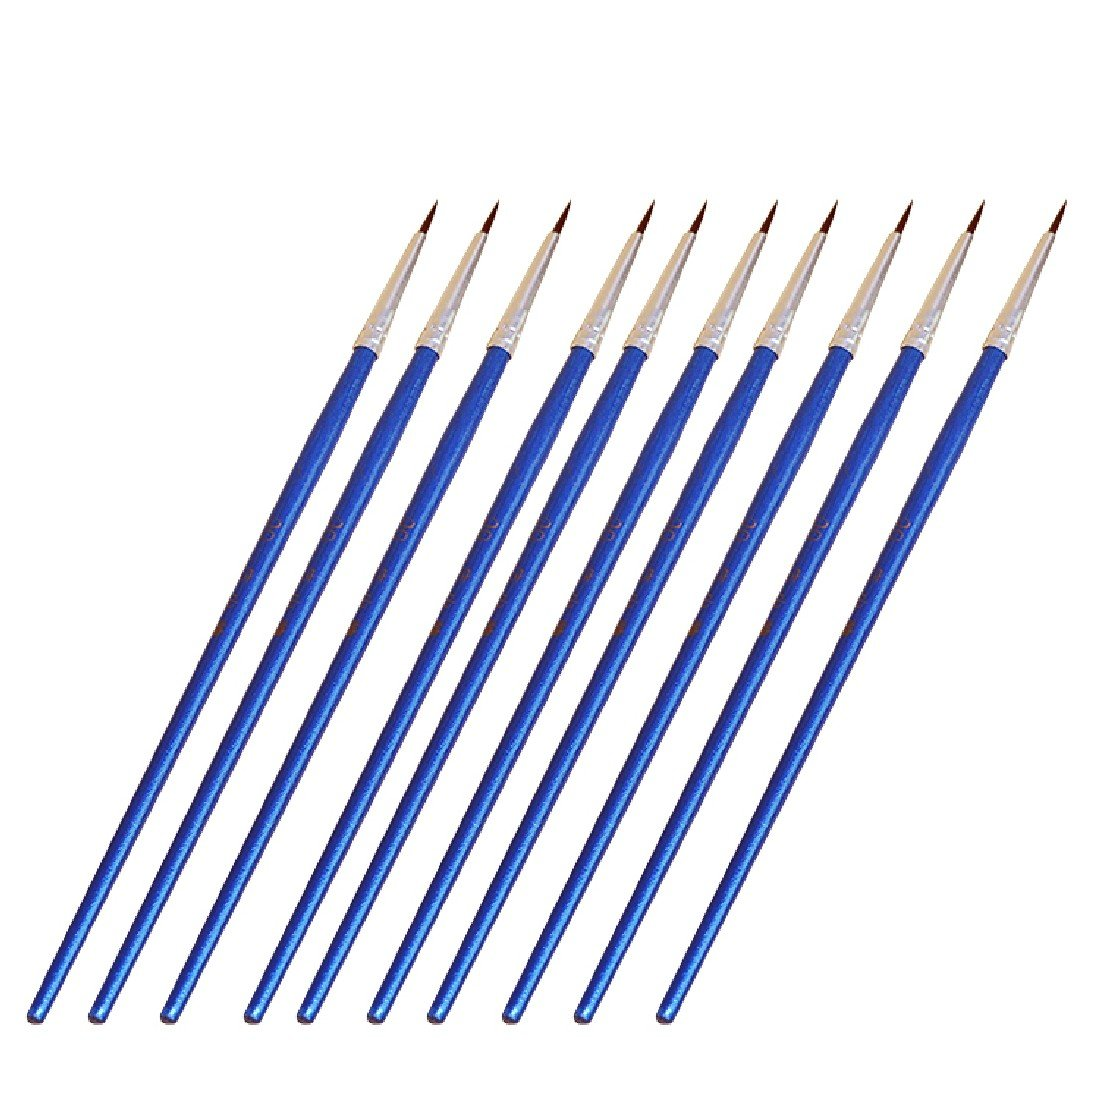 10Pcs Miniature Fine Paintbrushes Detail Painting Brushes for Watercolor Acrylic #0 Joylive 4336958619